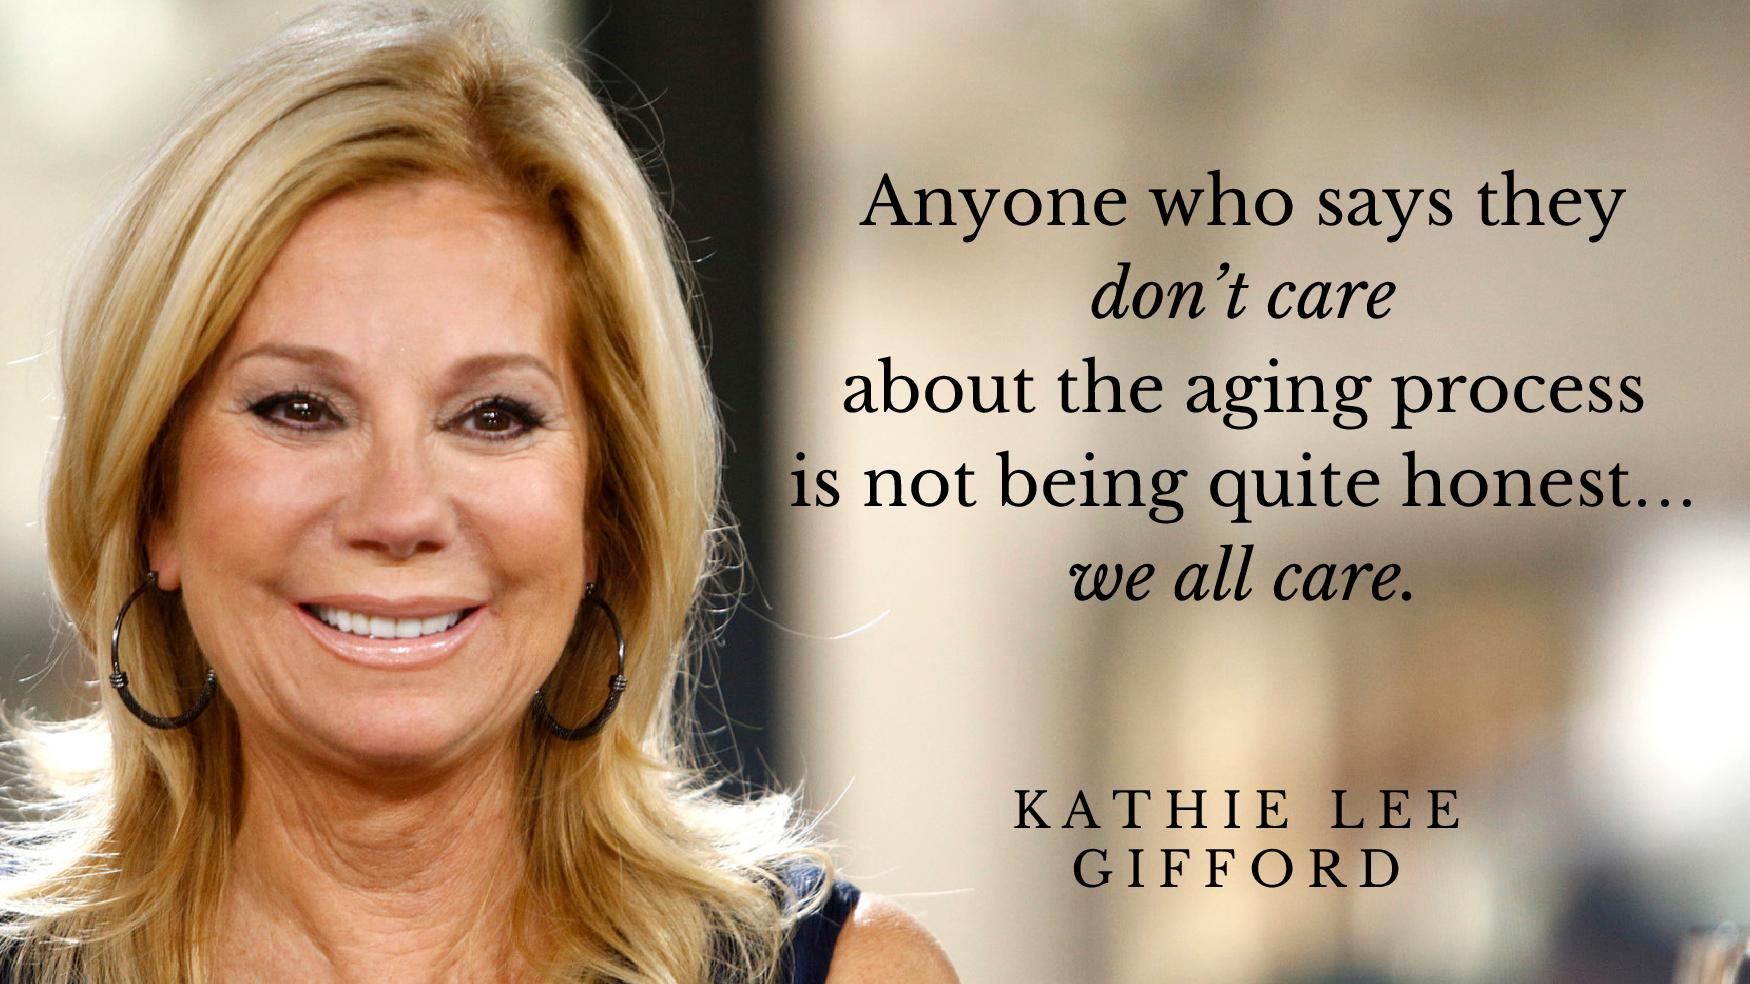 kathie lee quote